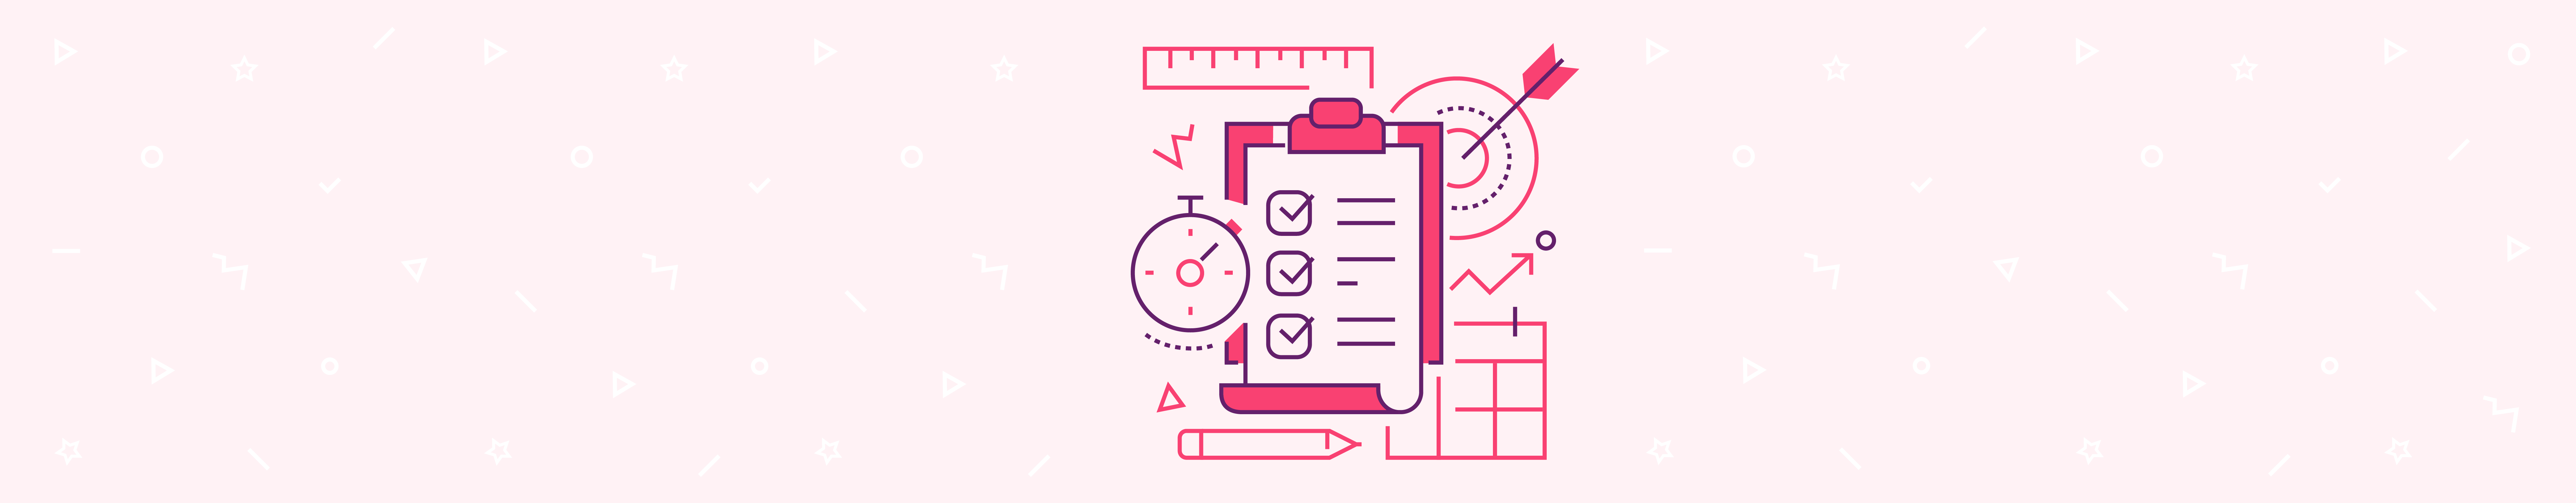 Image of project management tools in dark pink over pink background